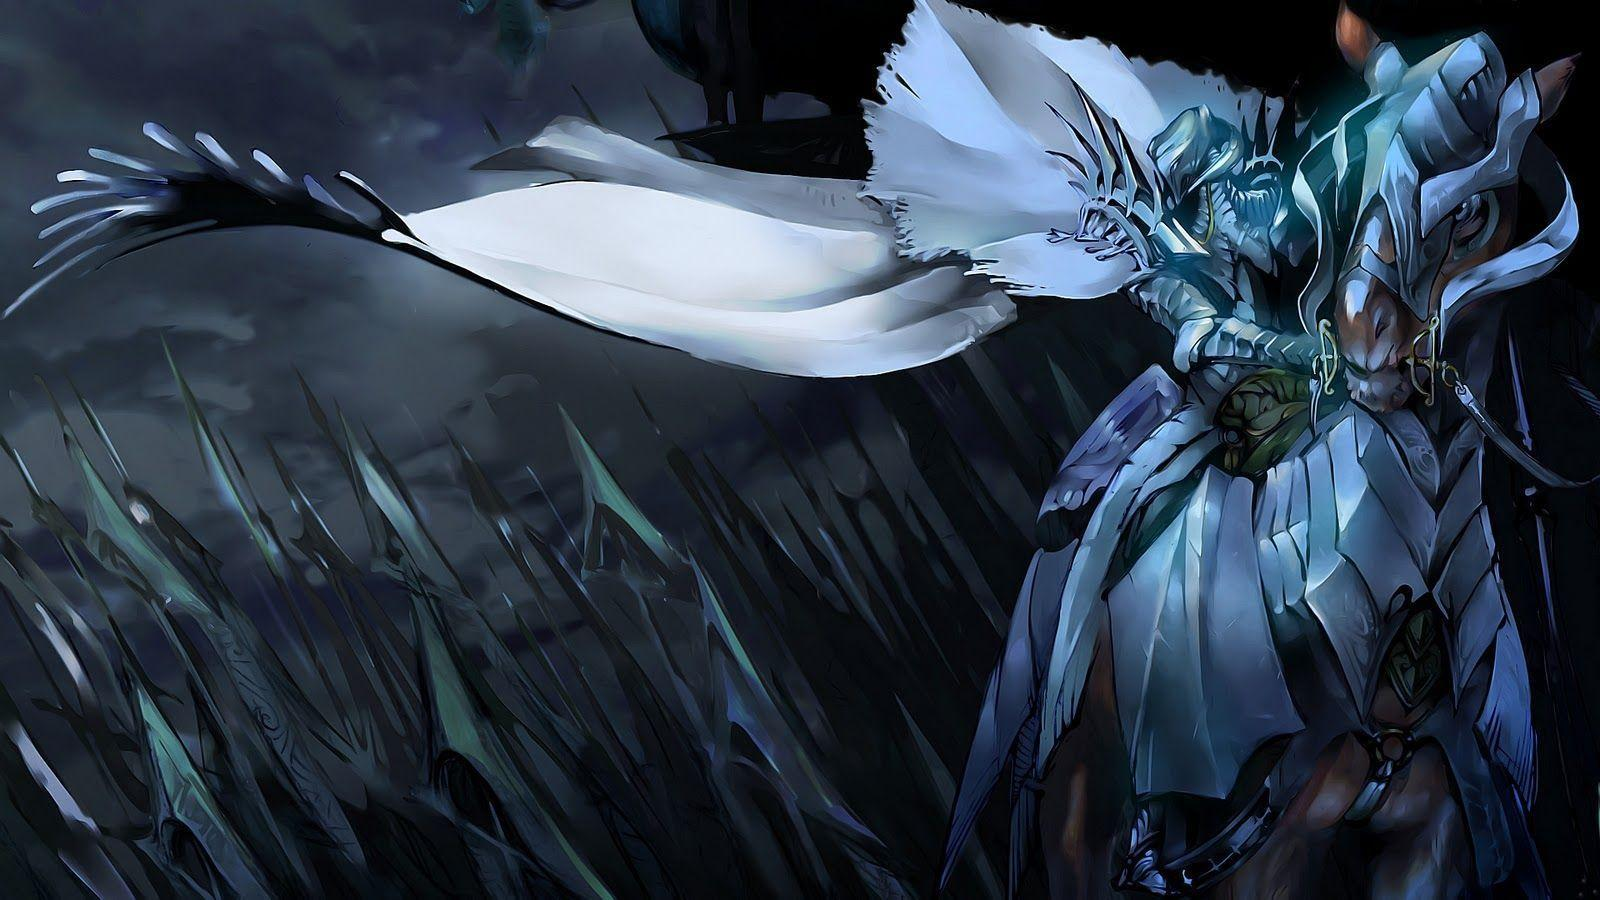 3d Animation 5 Hd Screensavers White Knight Chronicles